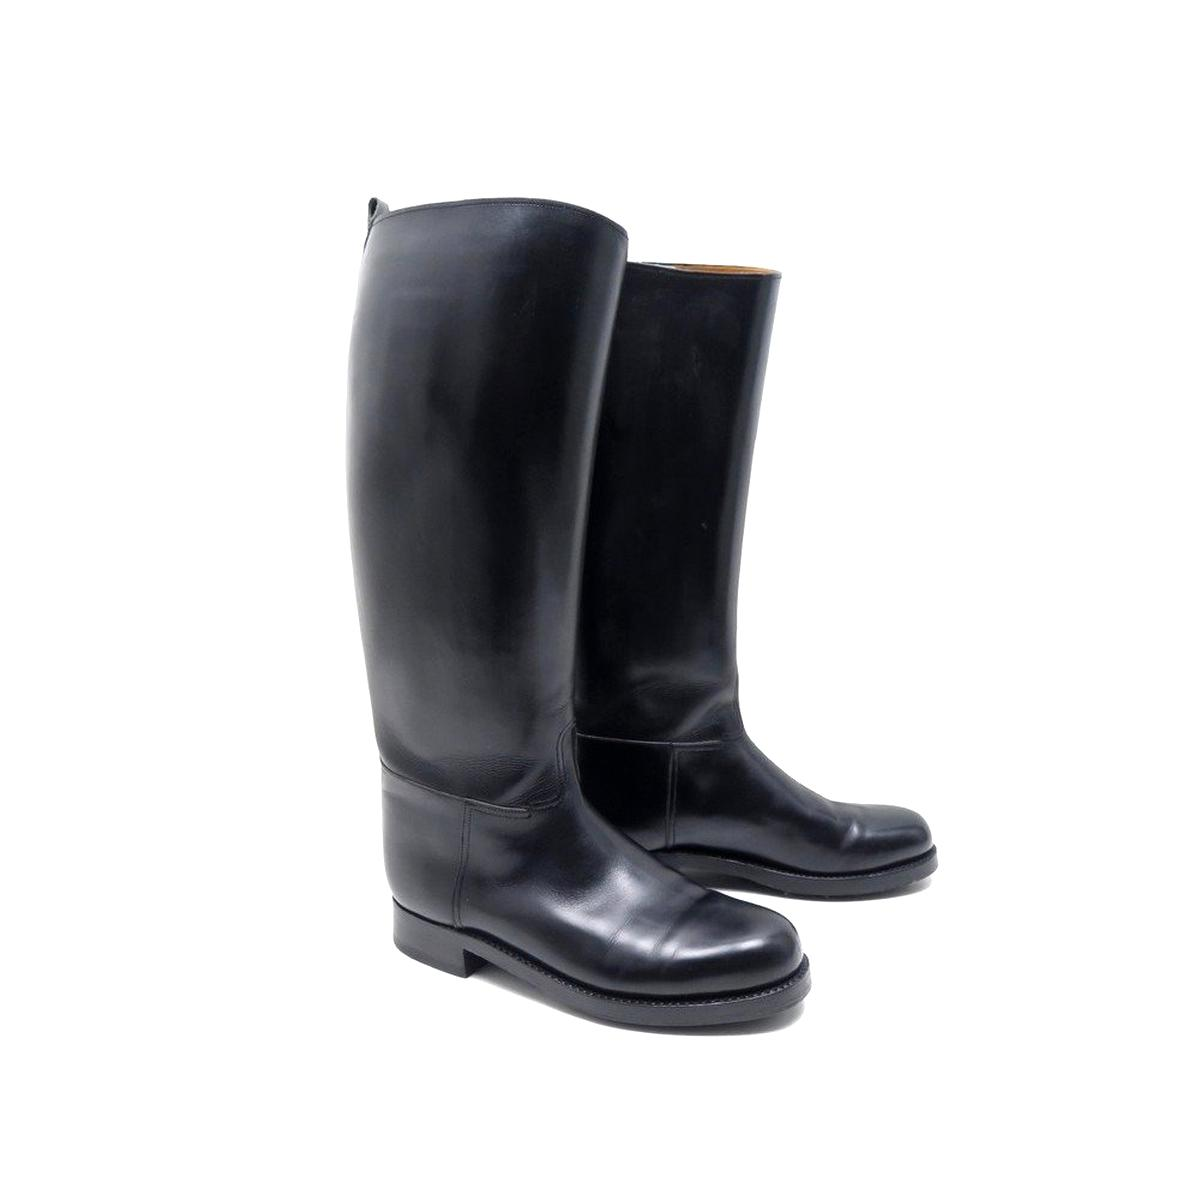 botte cuir homme occasion 43